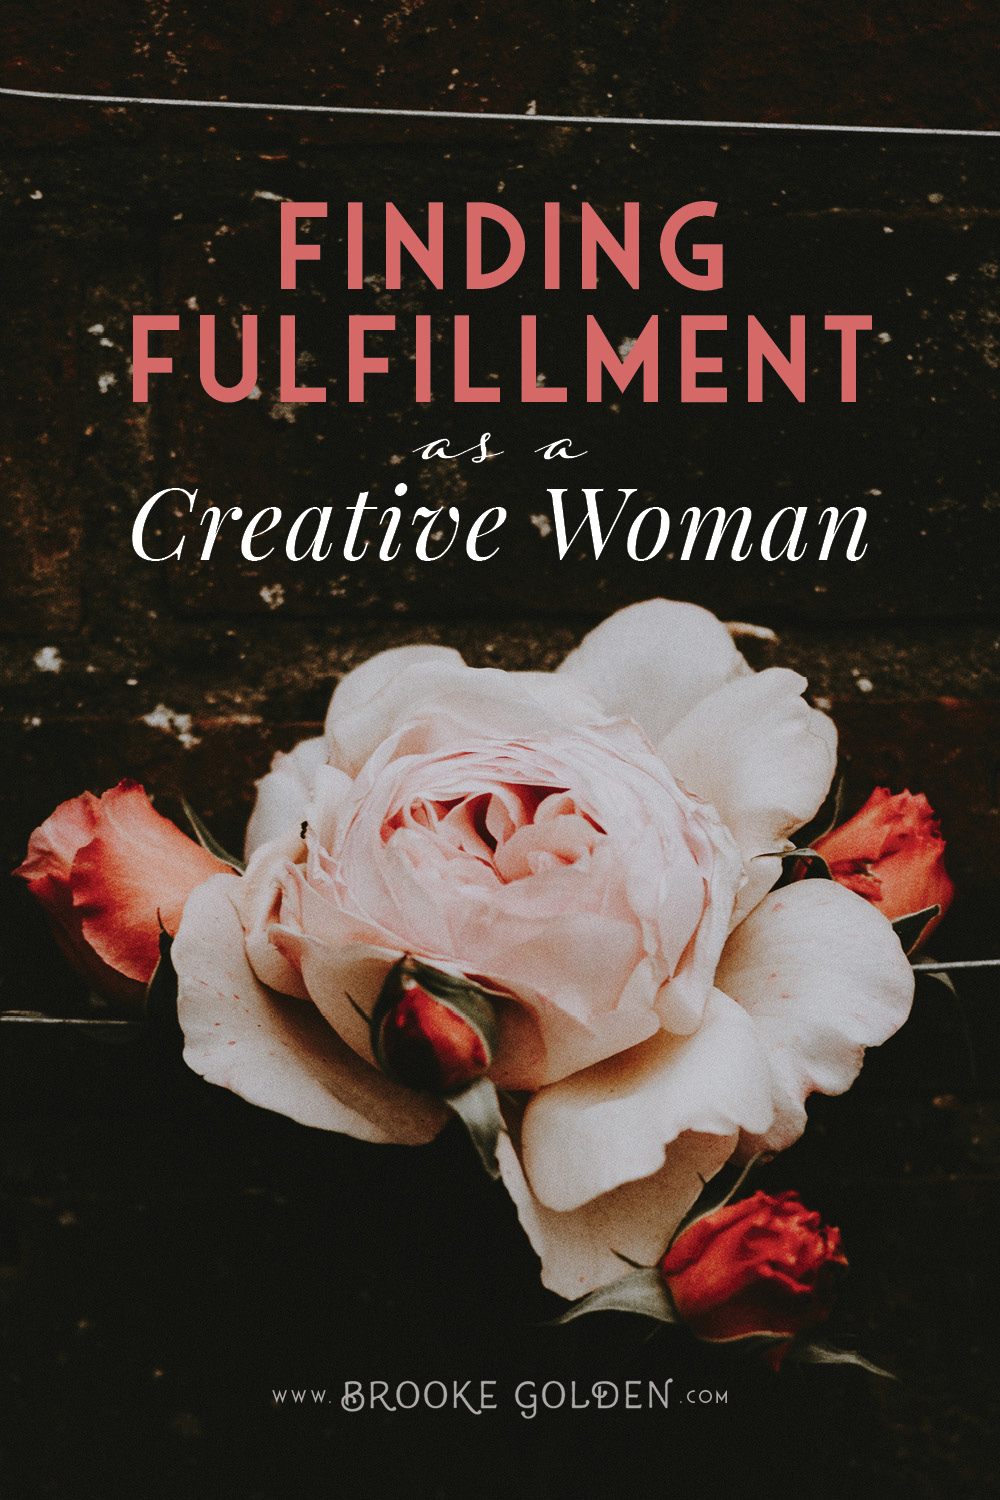 Finding Fulfillment as a Creative Woman